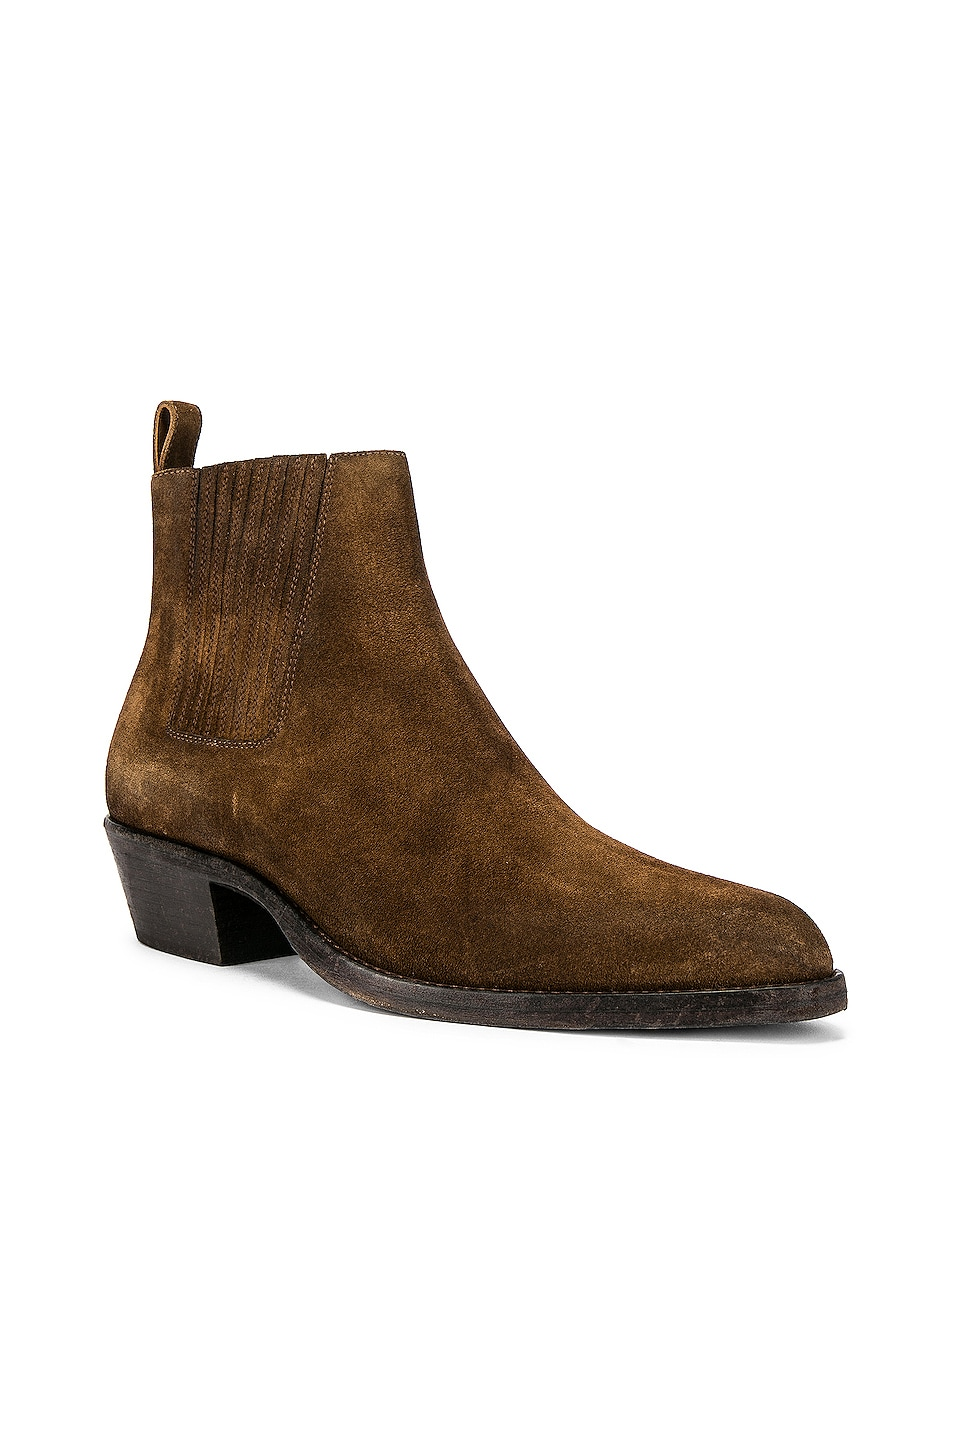 Saint Laurent Dakota Boots Land durable service